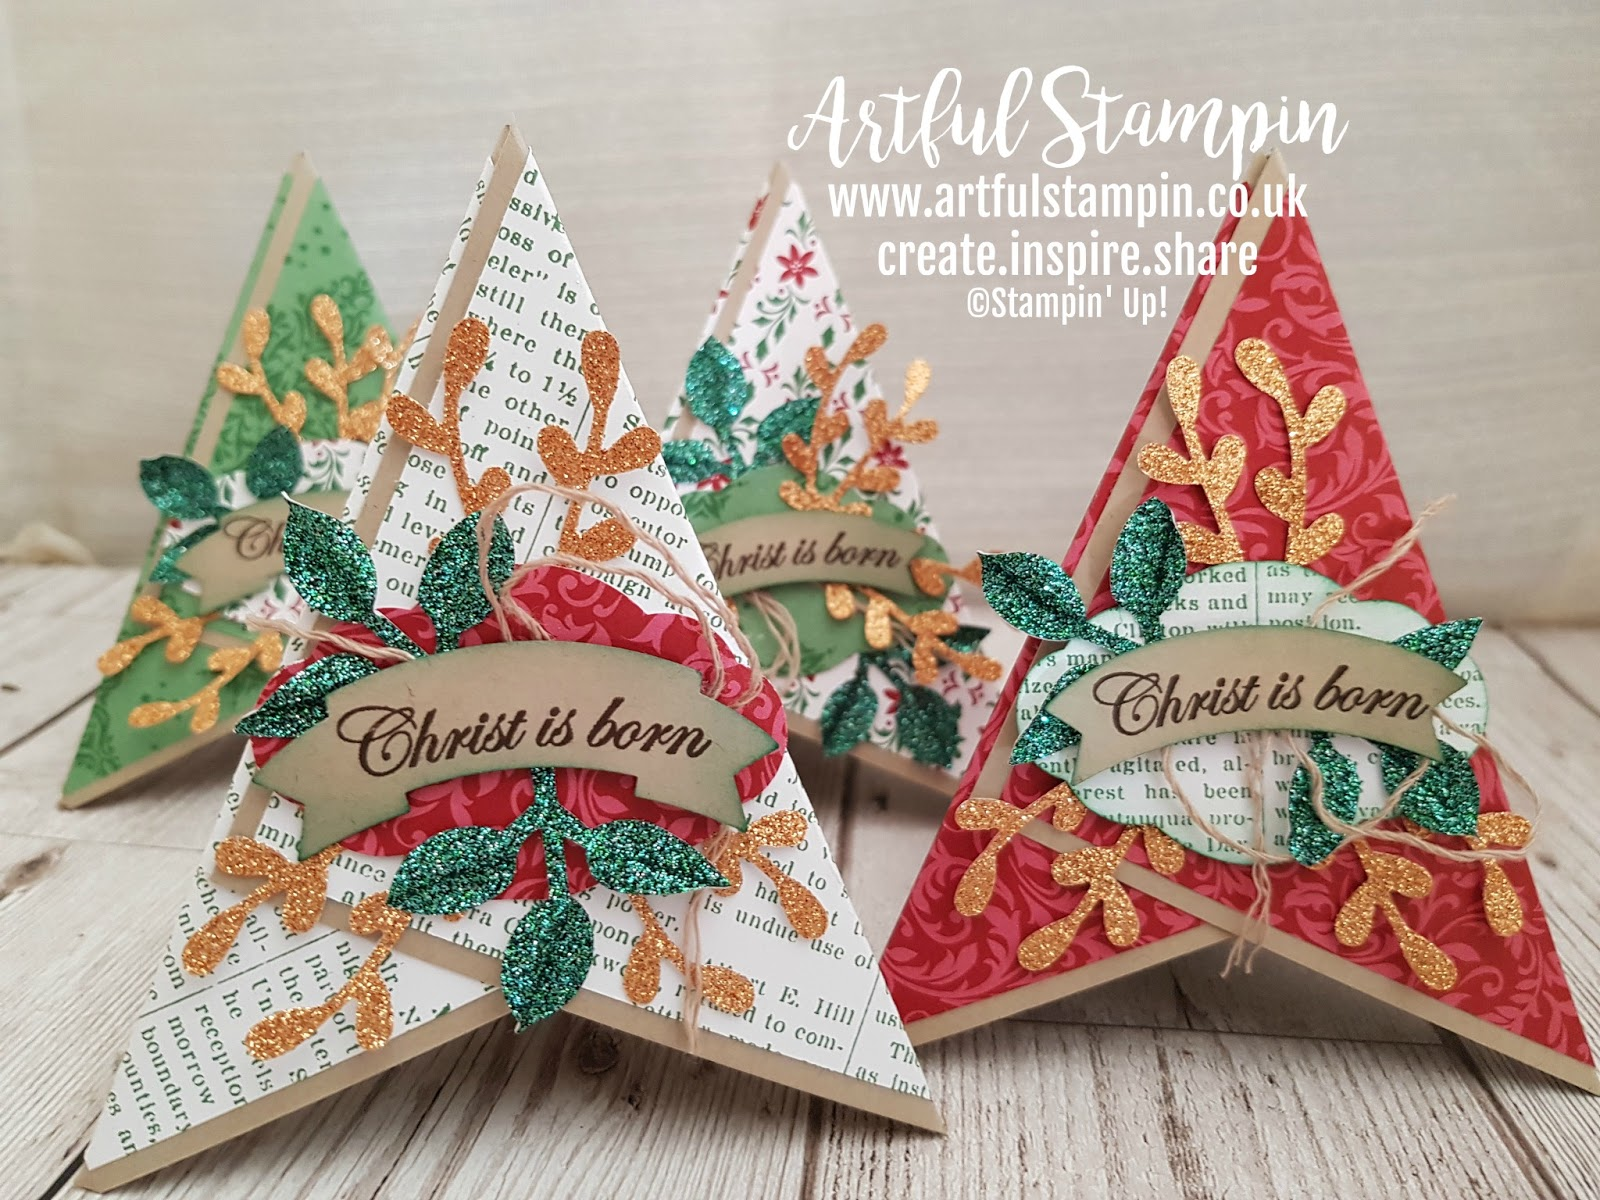 Artful Stampin Uk Independent Stampin Up demonstrator Ruth